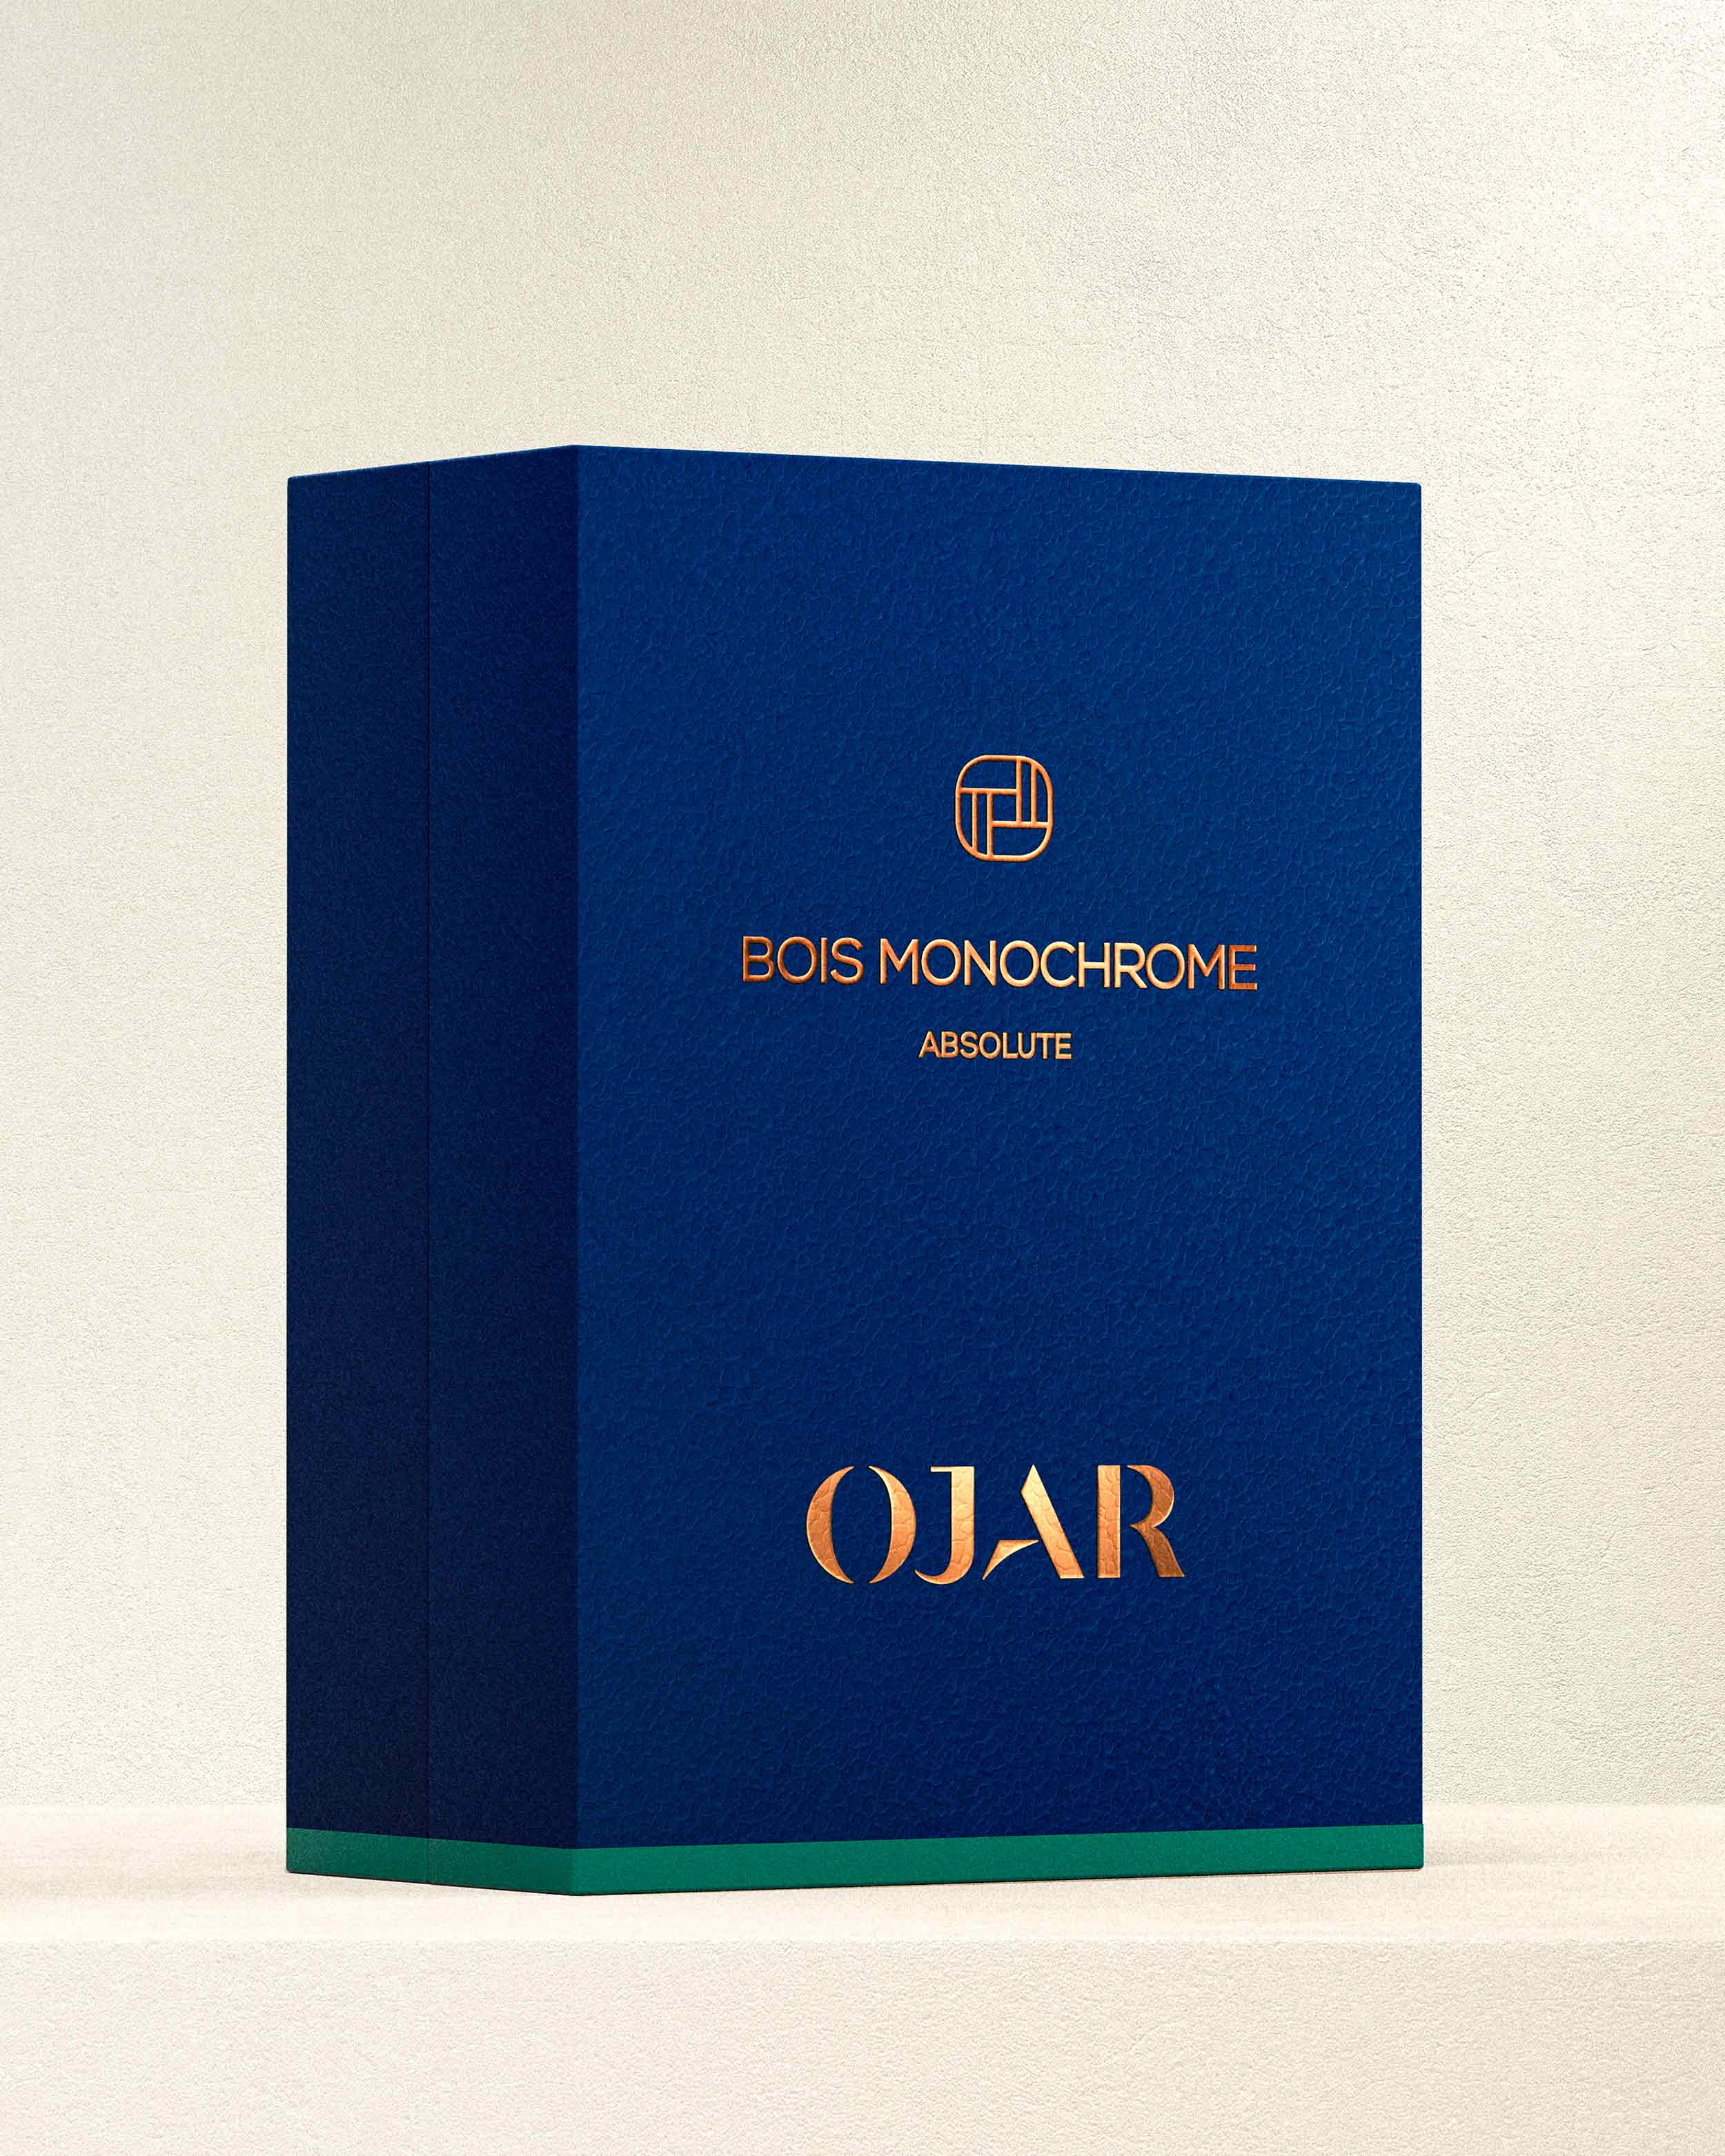 OJAR Absolute Bois Monochrome Perfume Pack